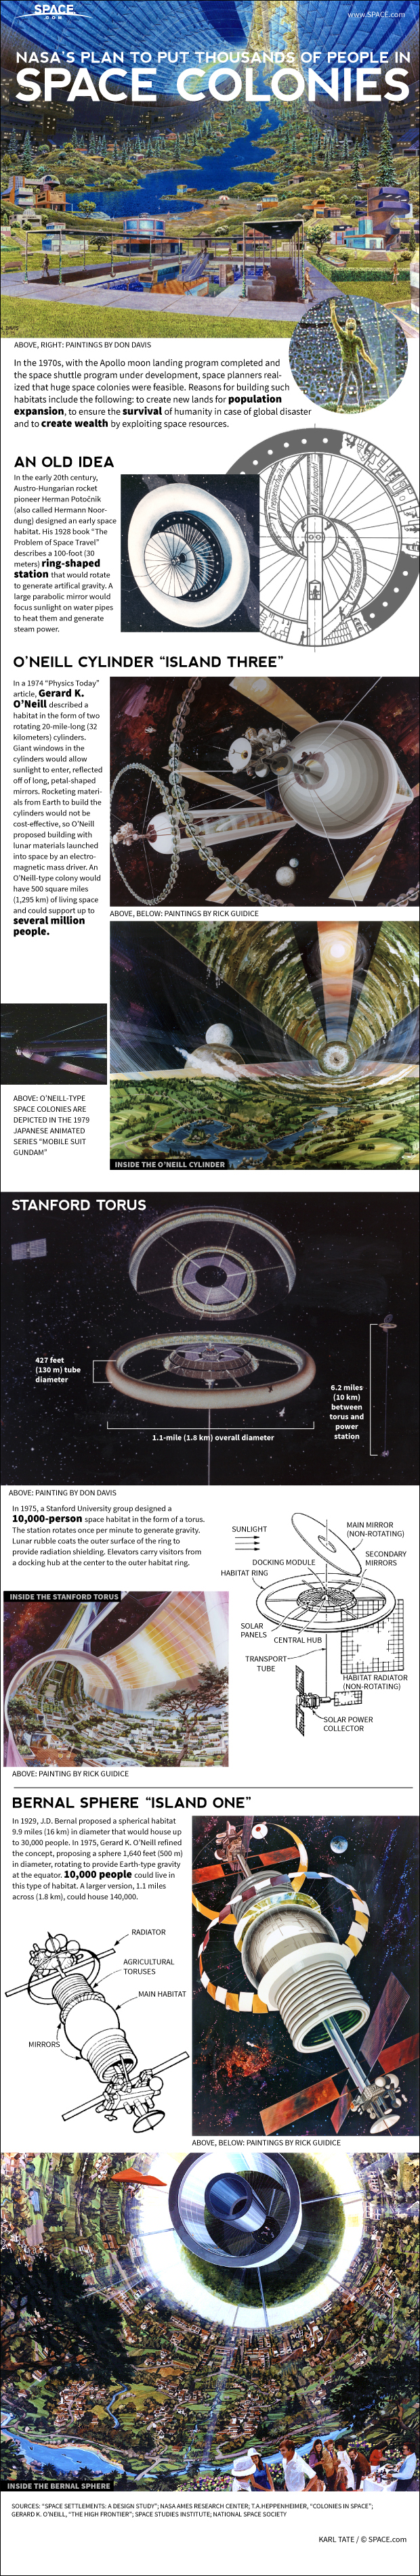 space colony infographic